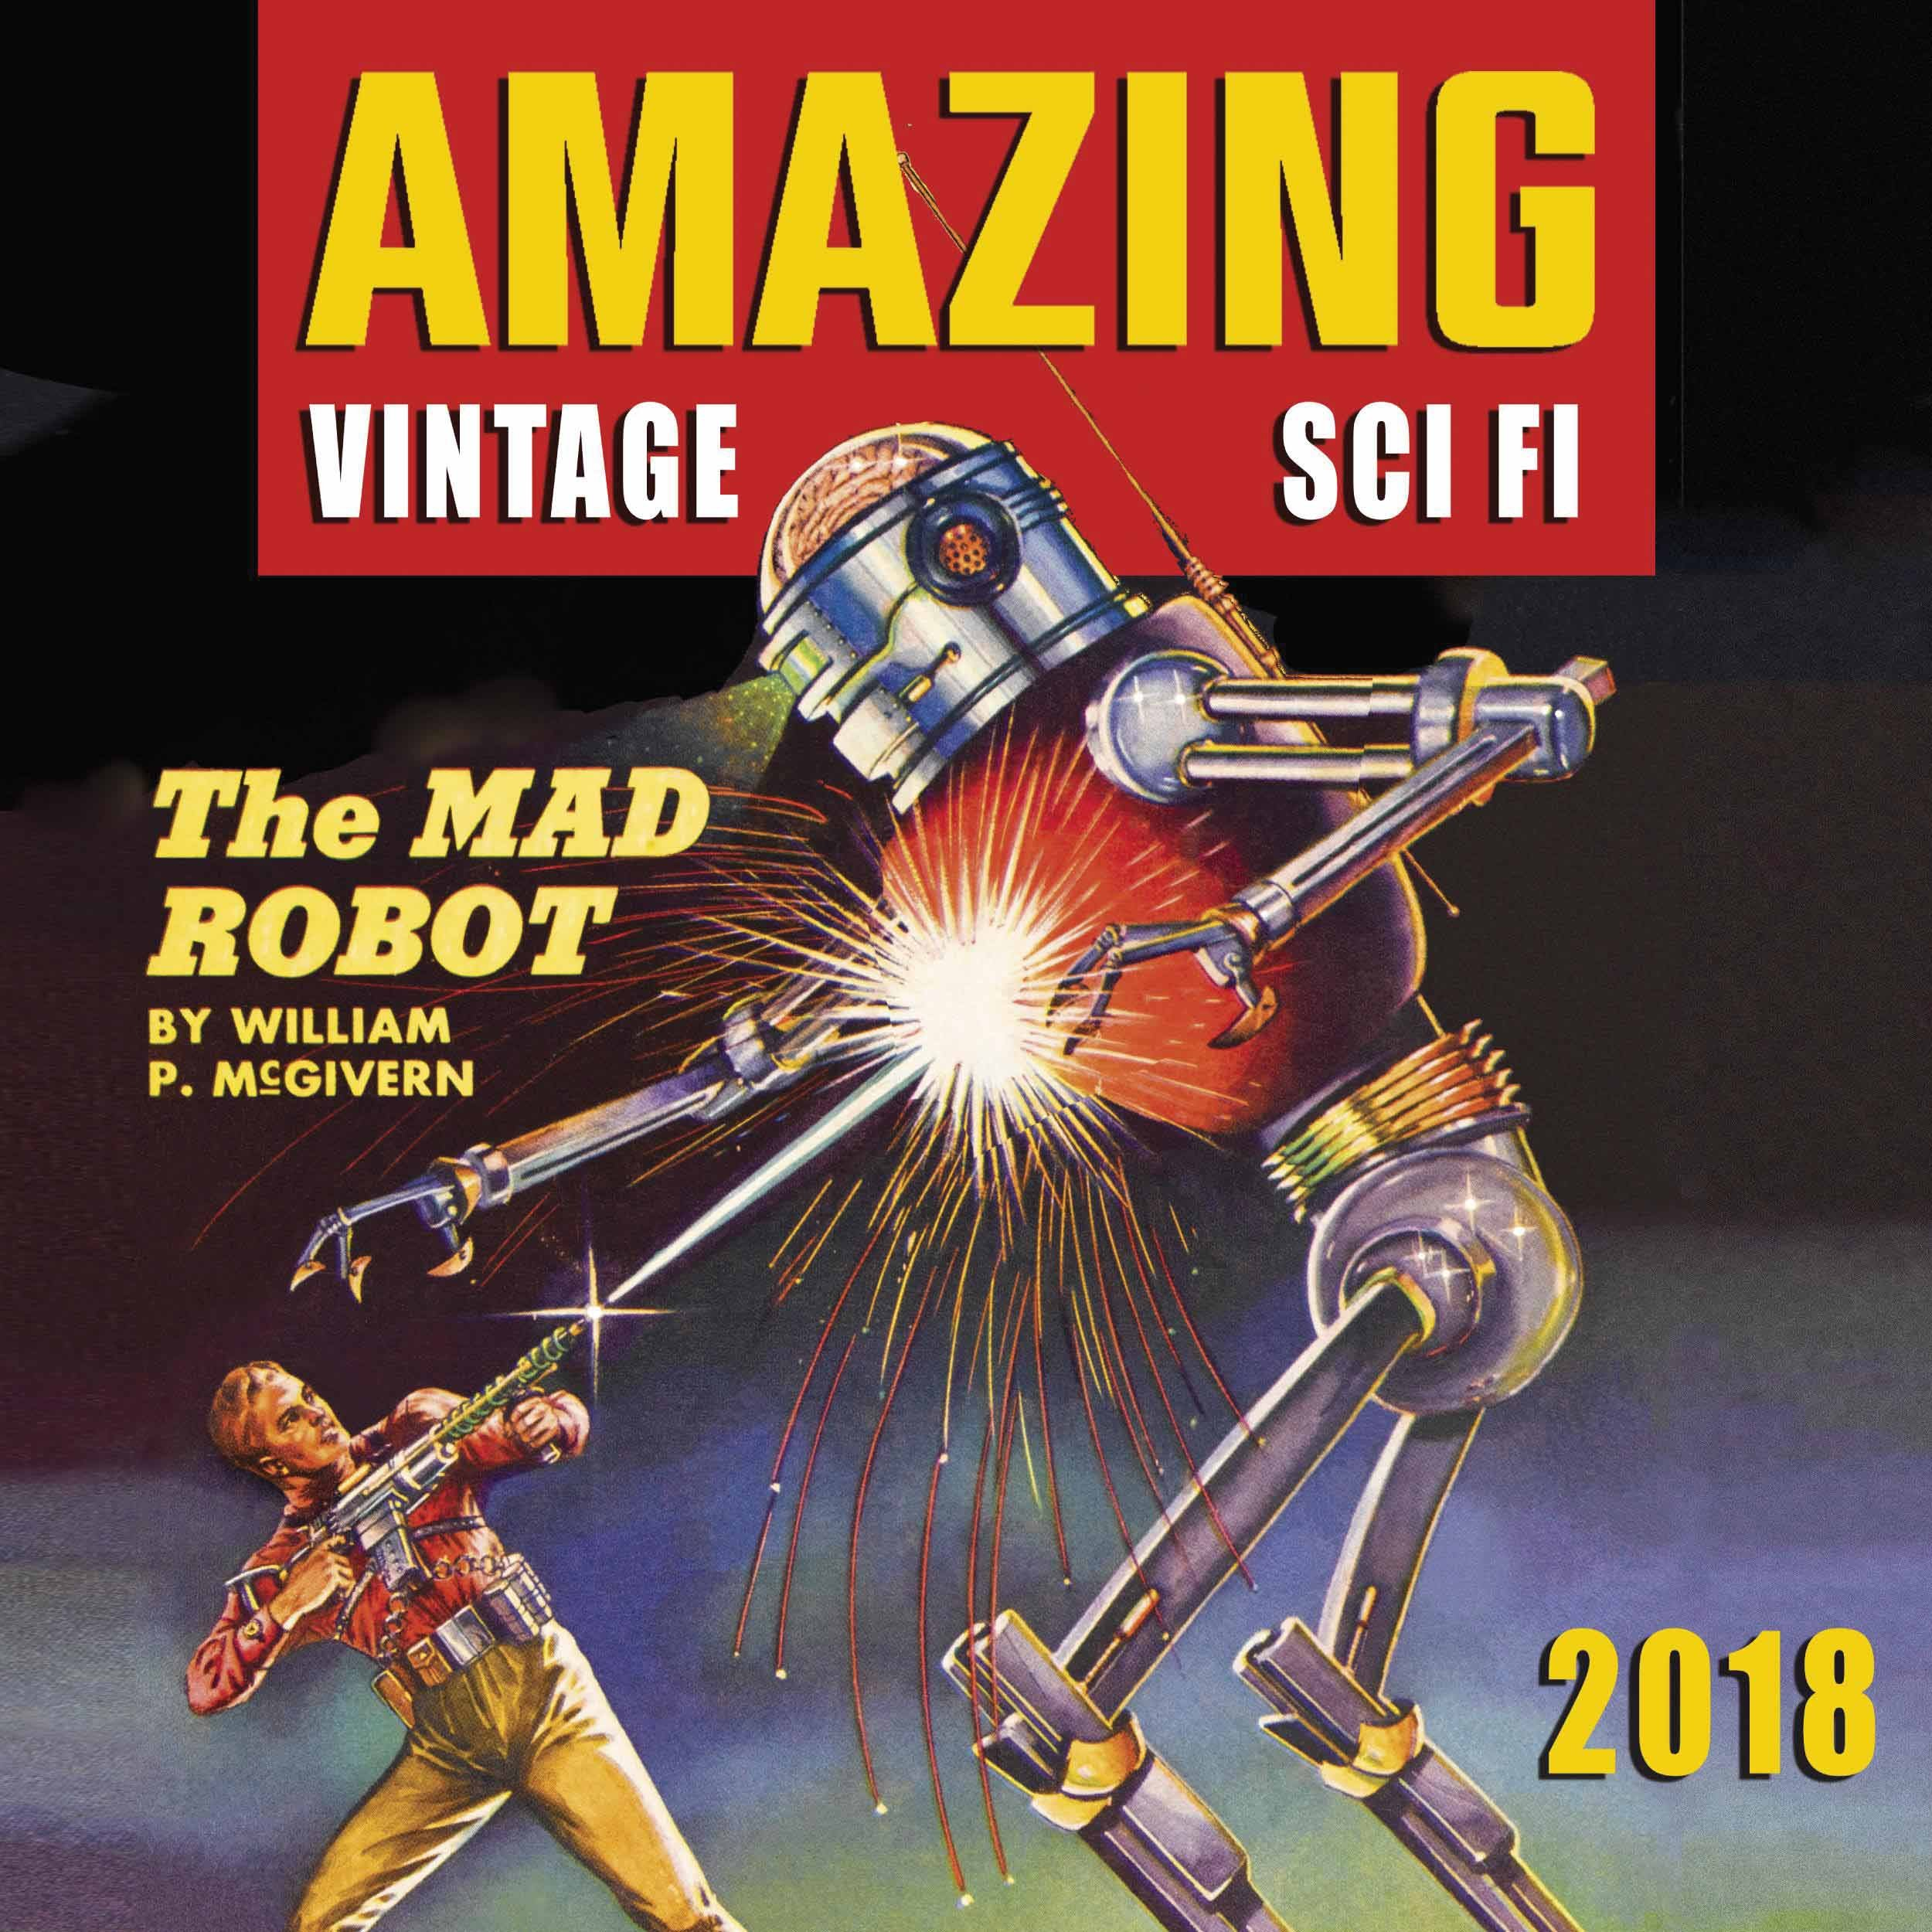 Amazing Vintage Sci Fi 2018 Calendar 9781848862746 Amazon Books